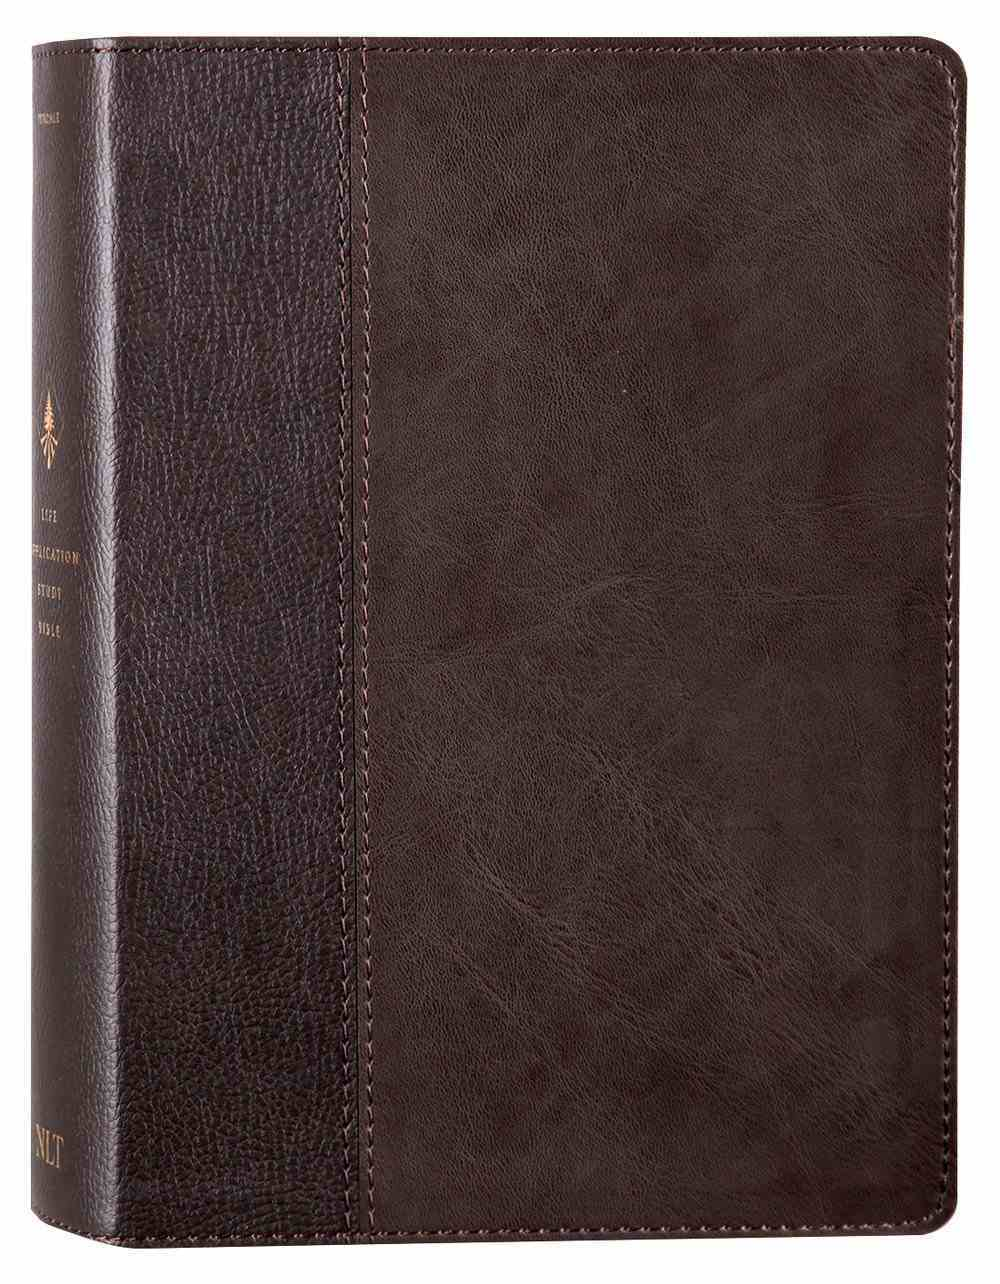 NLT Life Application Study Bible 3rd Edition Dark Brown/Brown (Black Letter Edition) Imitation Leather